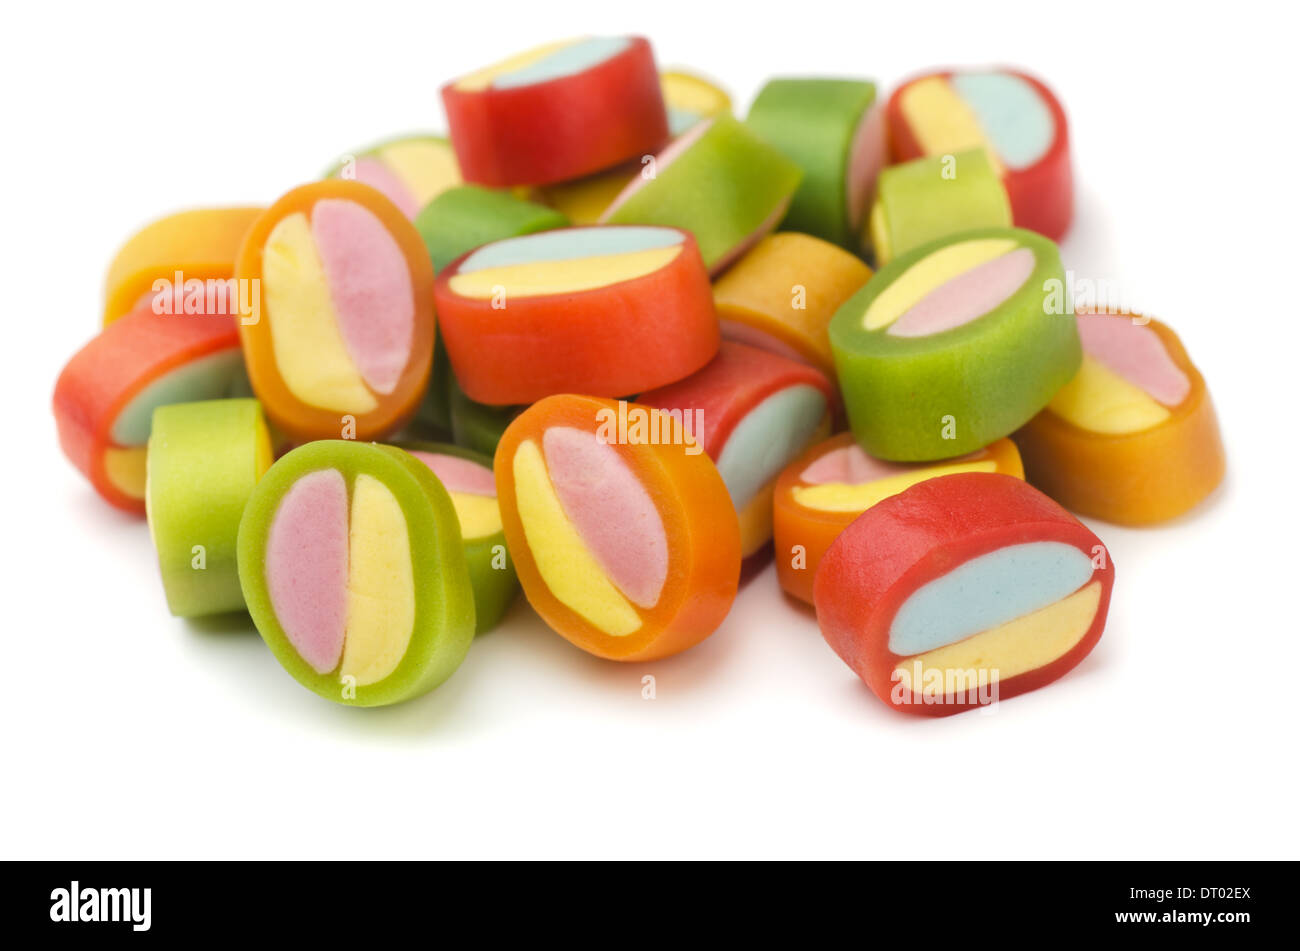 Pile of colorful gummy candies isolated on white Stock Photo